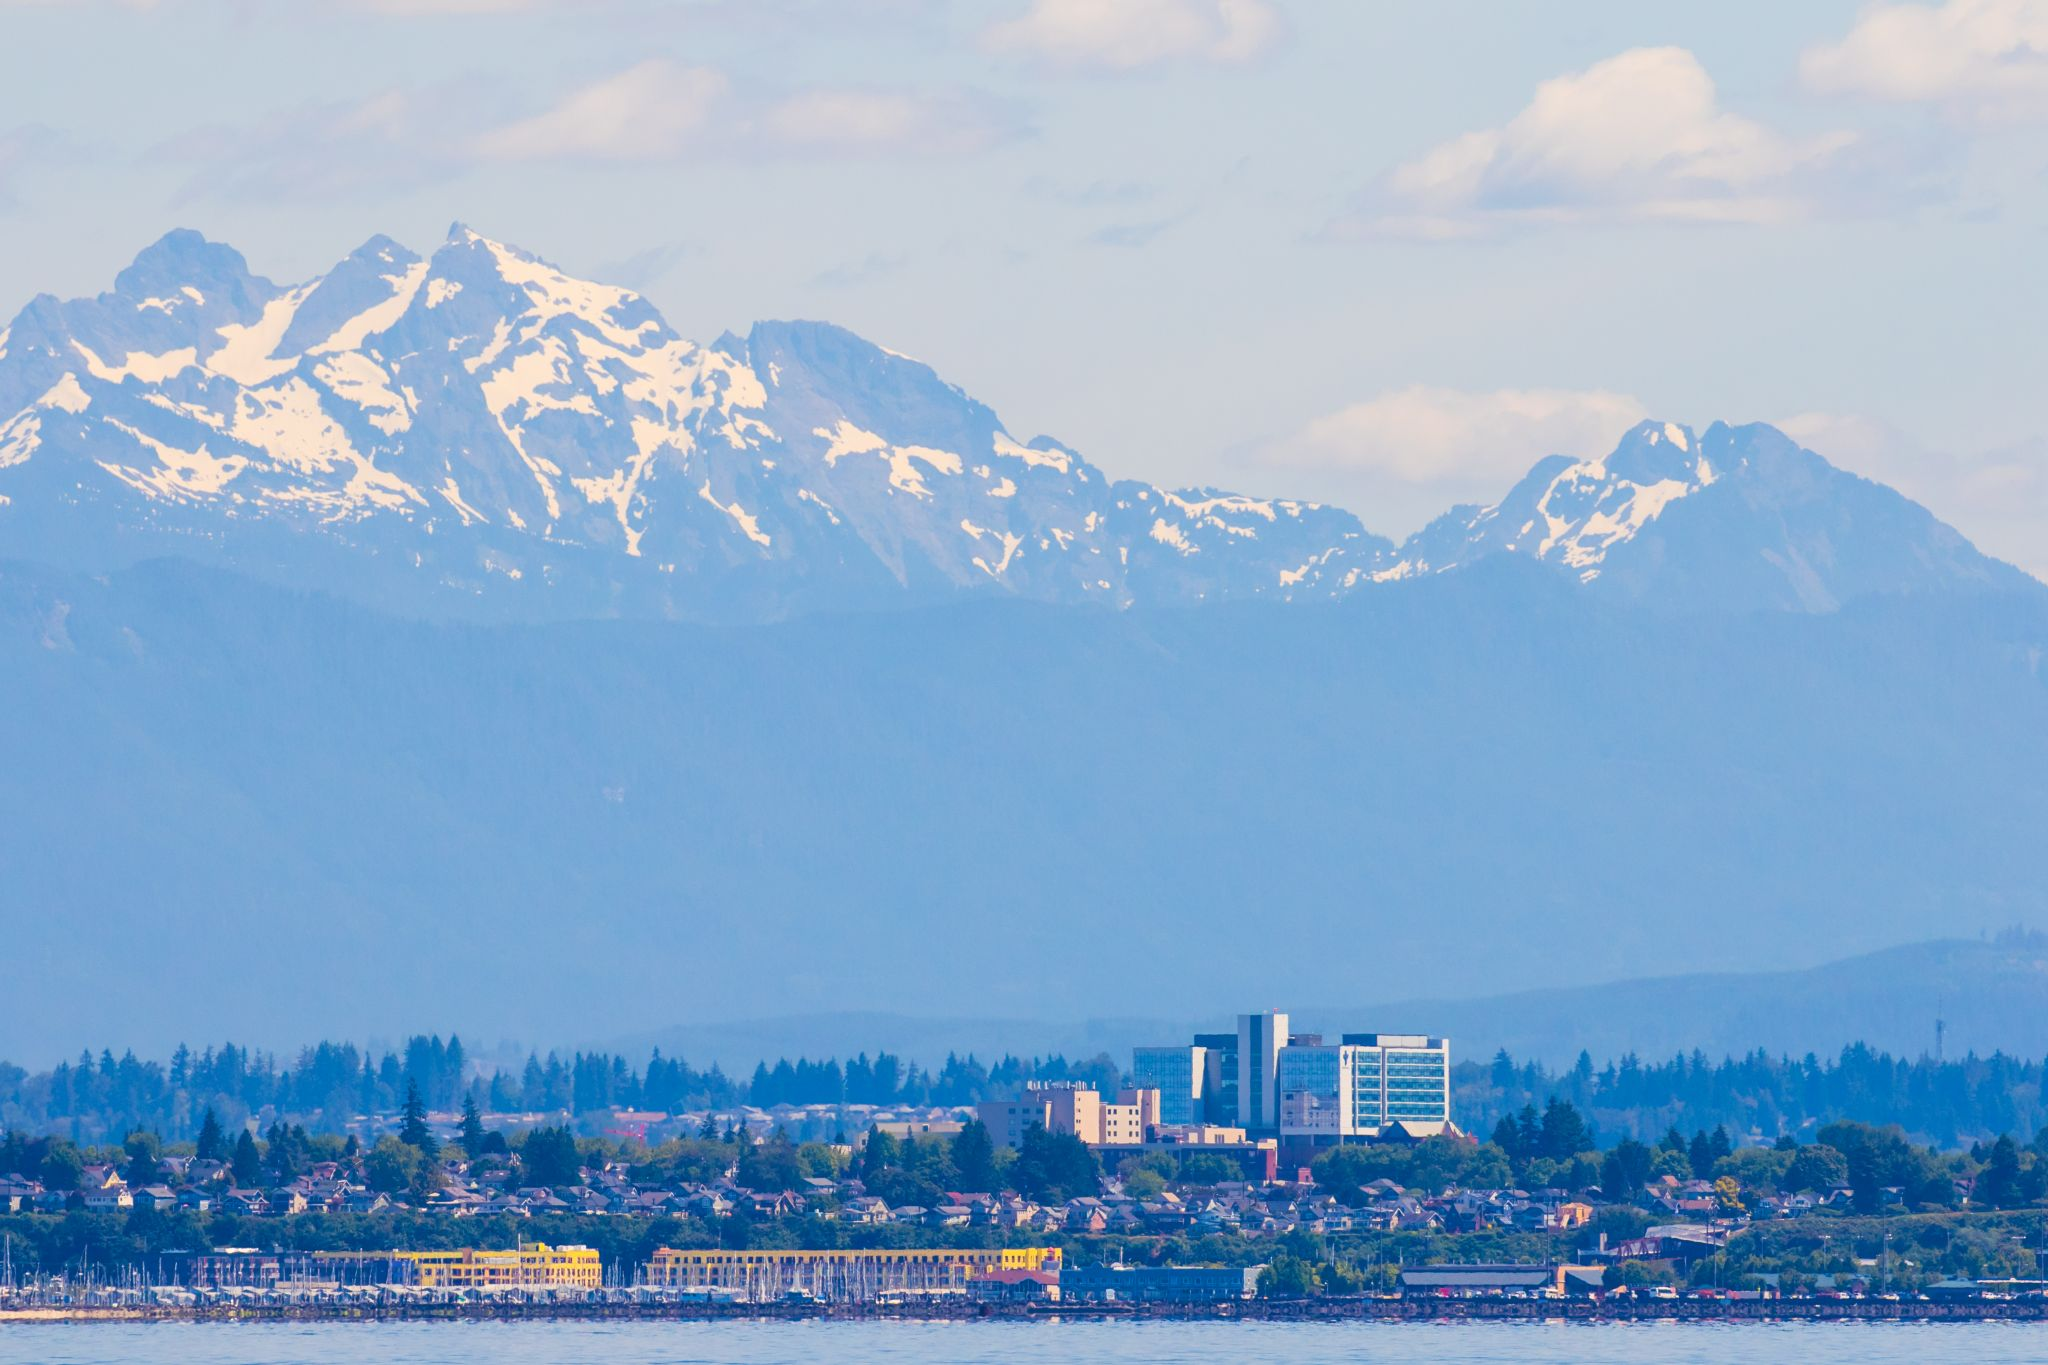 Looking to buy a home north of Seattle? Here's what you need to know